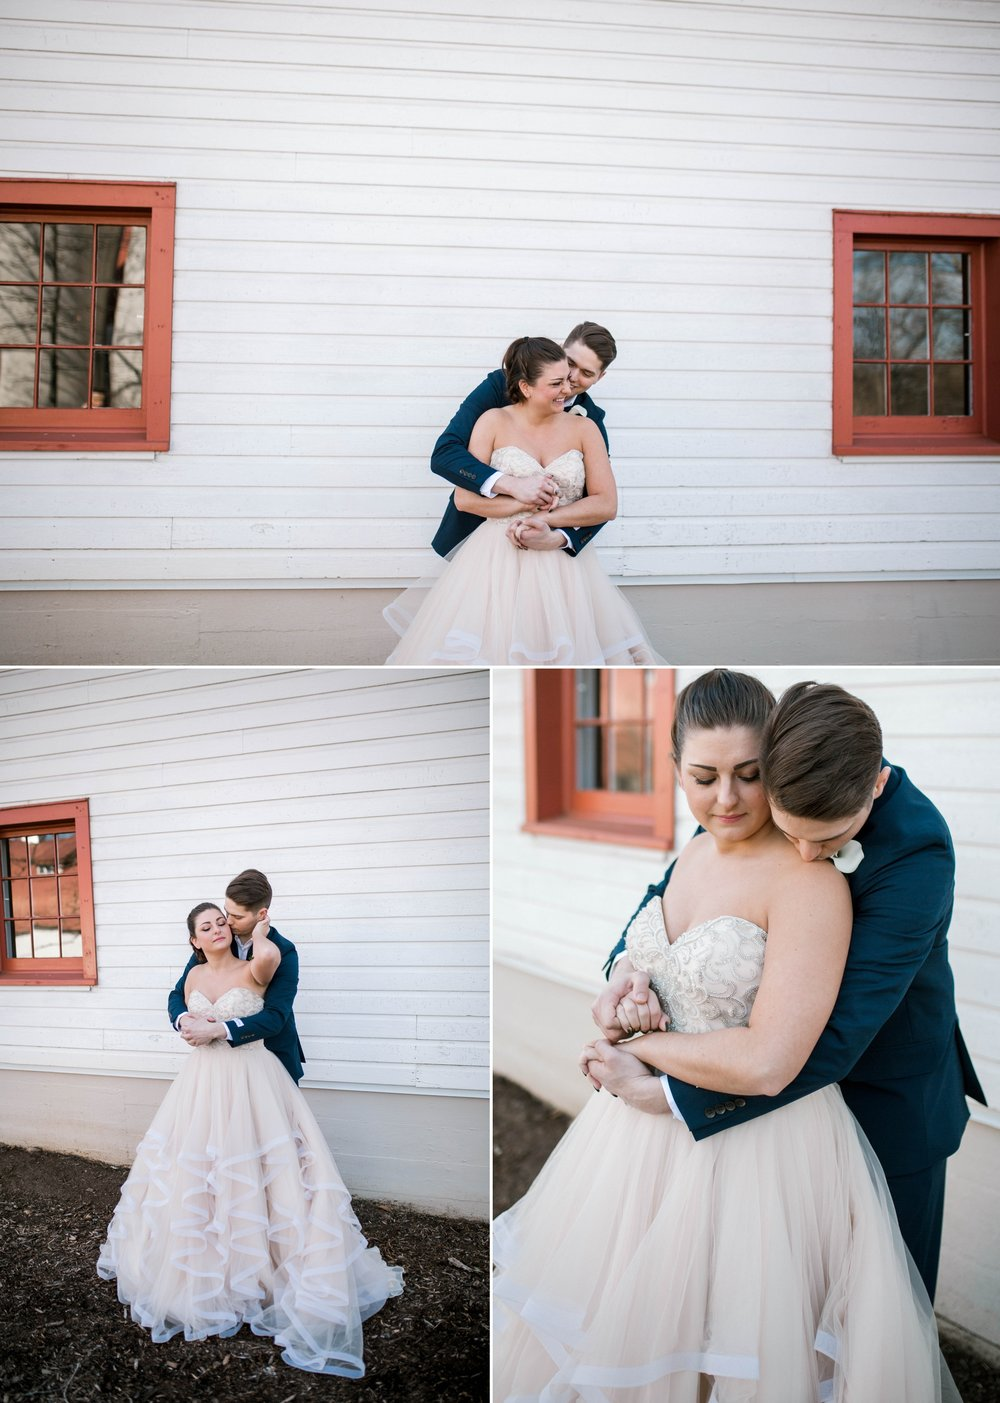 Wedding Photography at Winmock at Kinderton in Bermuda Run, NC - Winston-Salem North Carolina Wedding Photographer